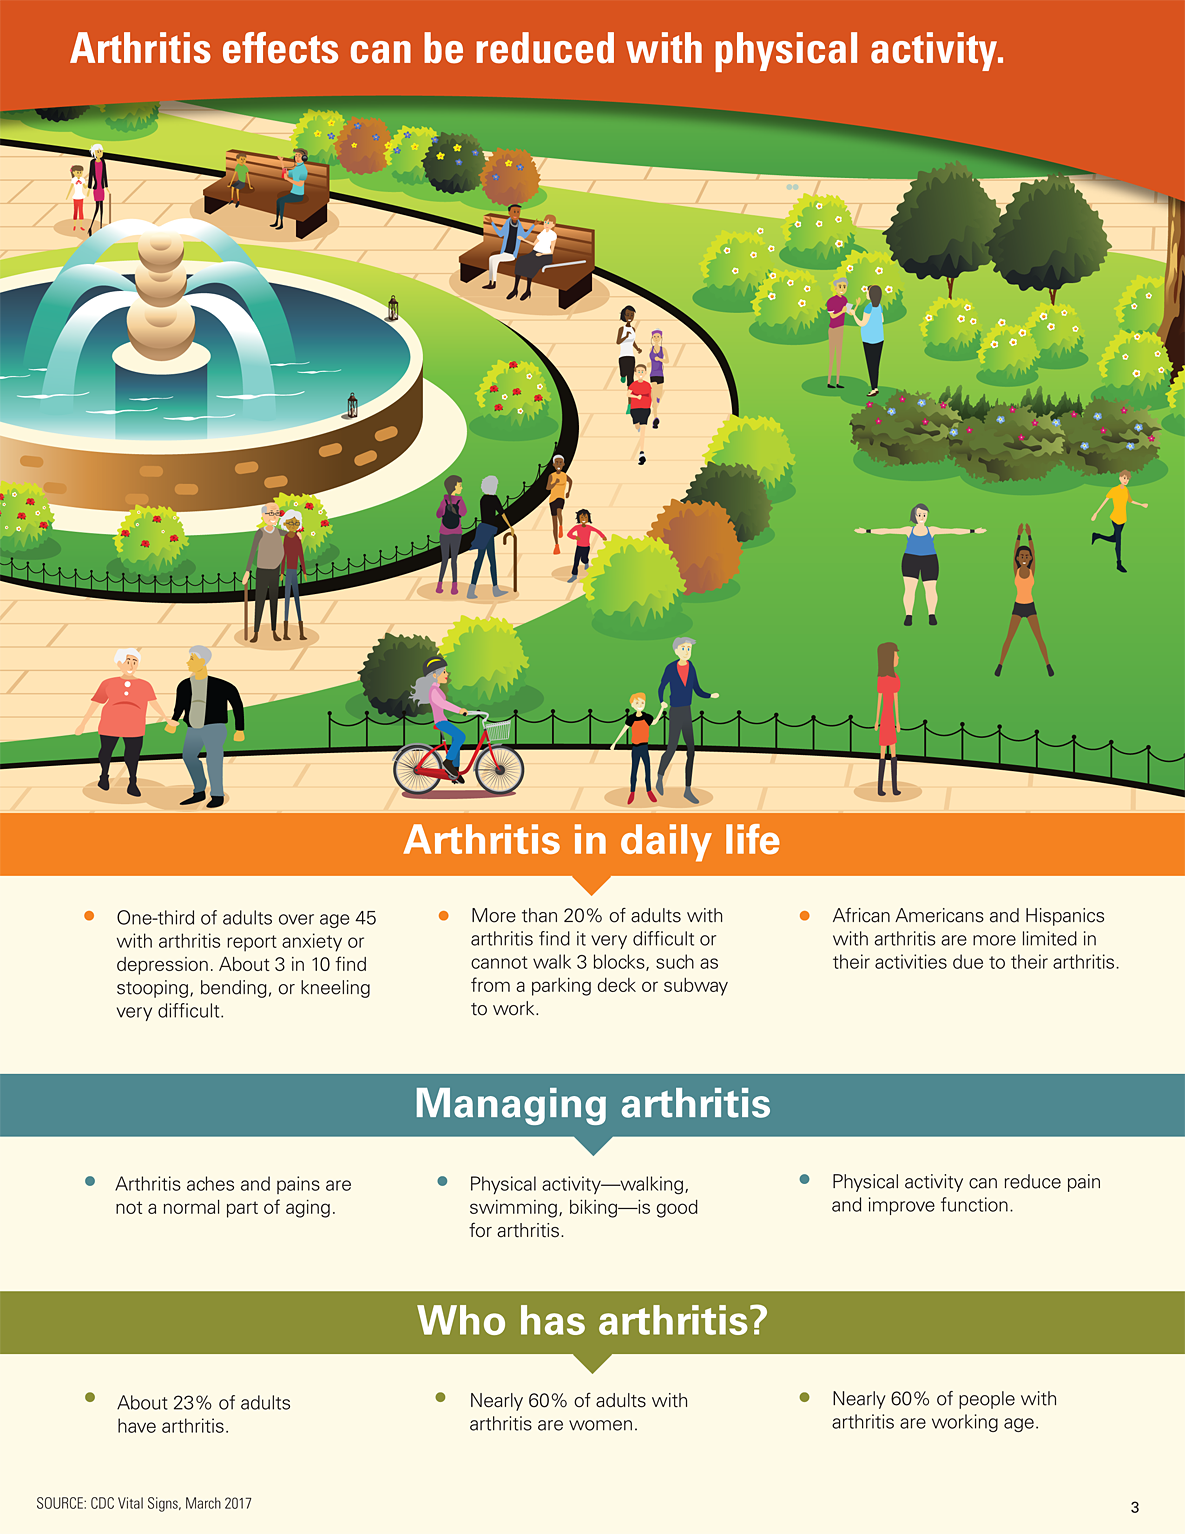 Arthritis effects can be reduced with daily physical activity